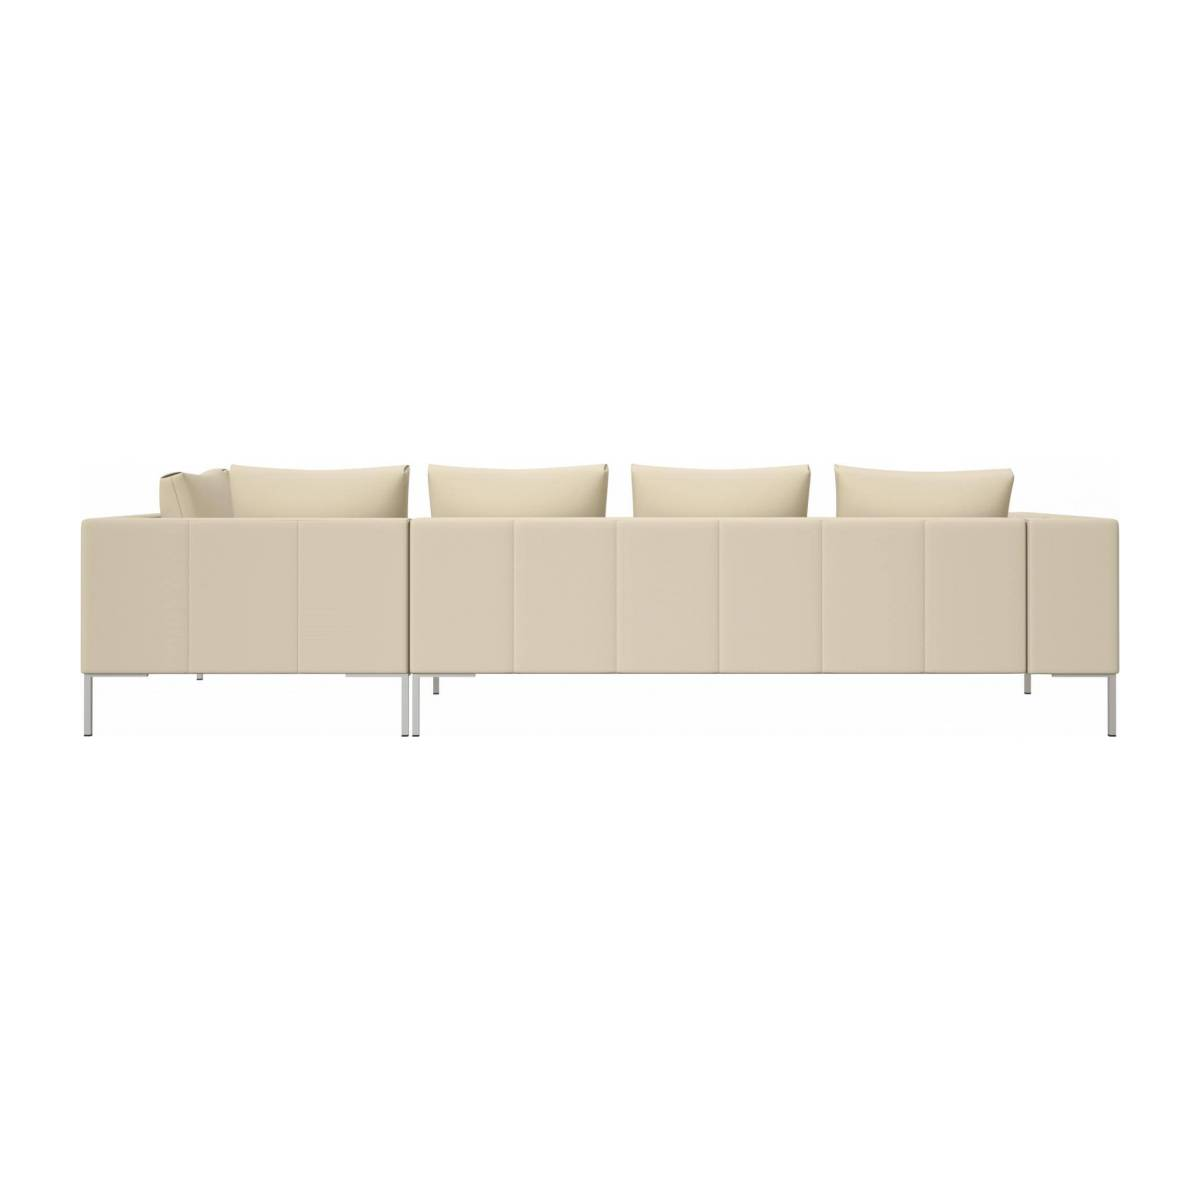 3 seater sofa with chaise longue on the right in Savoy semi-aniline leather, off white  n°3